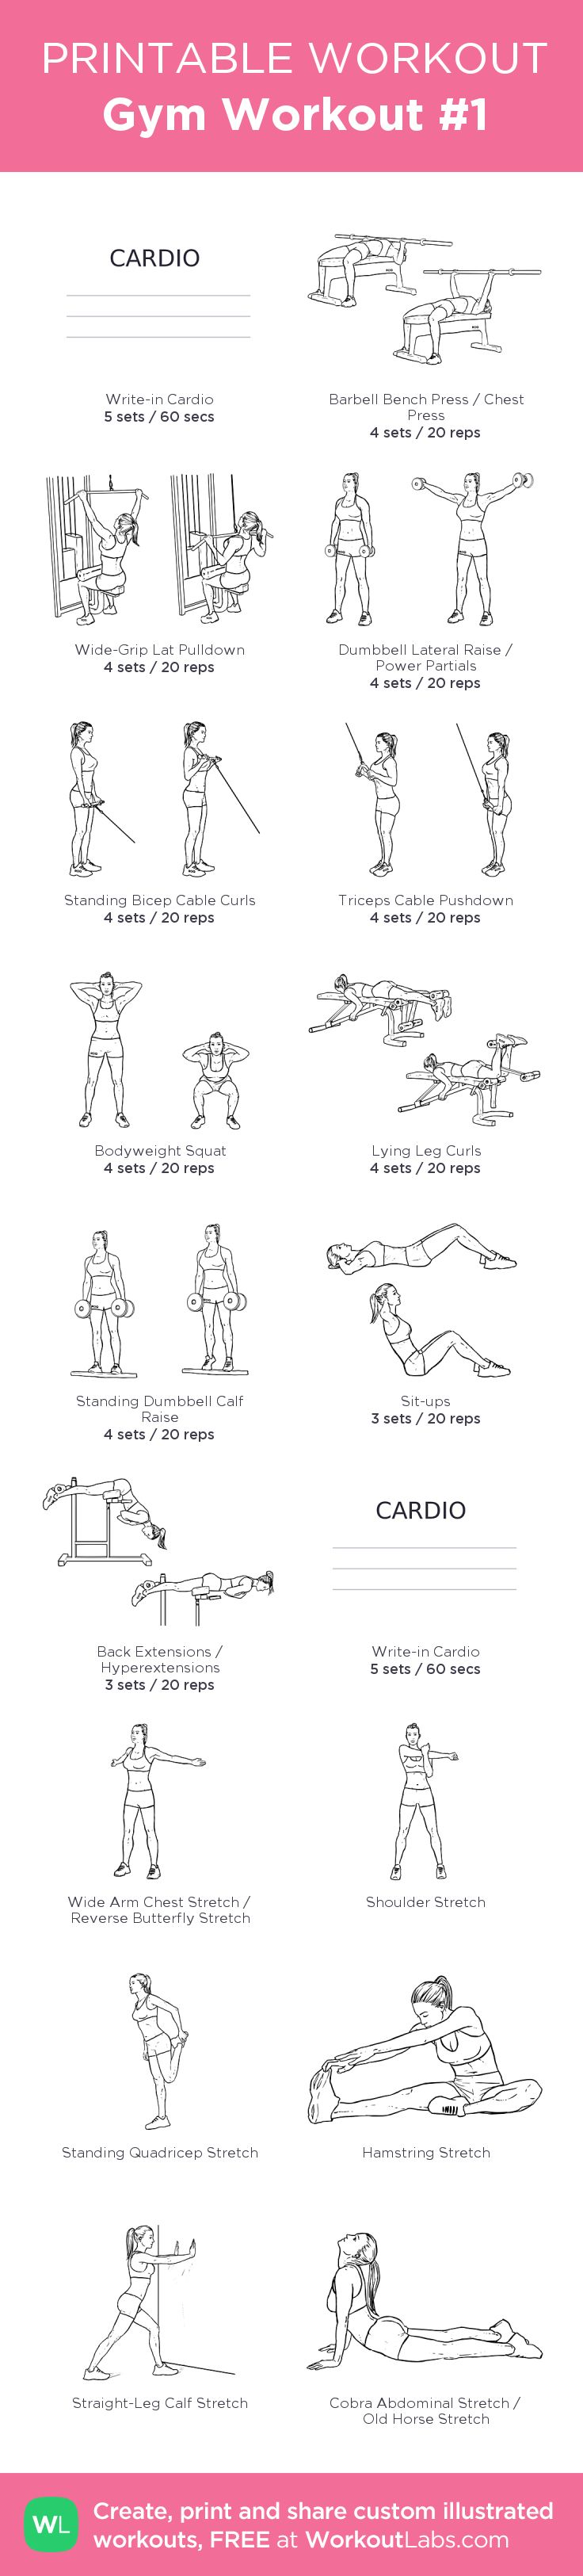 Gym Workout #1 – my custom workout created at WorkoutLabs.com • Click through to download as printable PDF! #customworkout